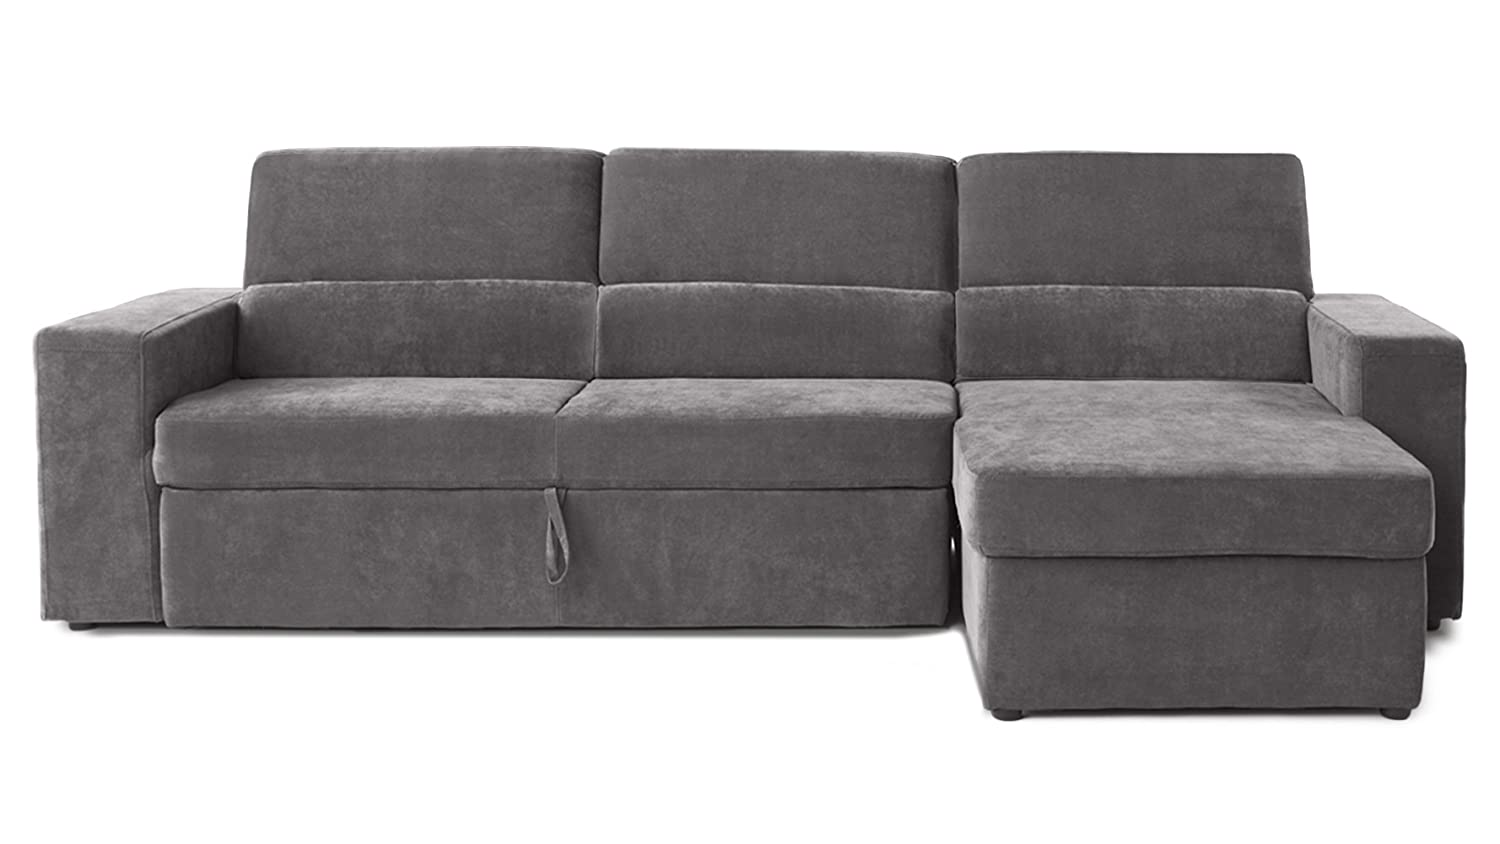 Gray/Green Clubber Sleeper Sectional Sofa - Right Chaise